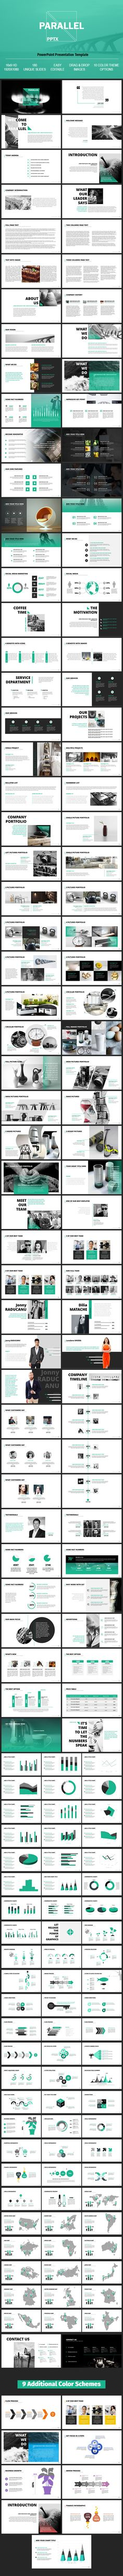 Pro Plus Business Powerpoint Presentation Template  Creative